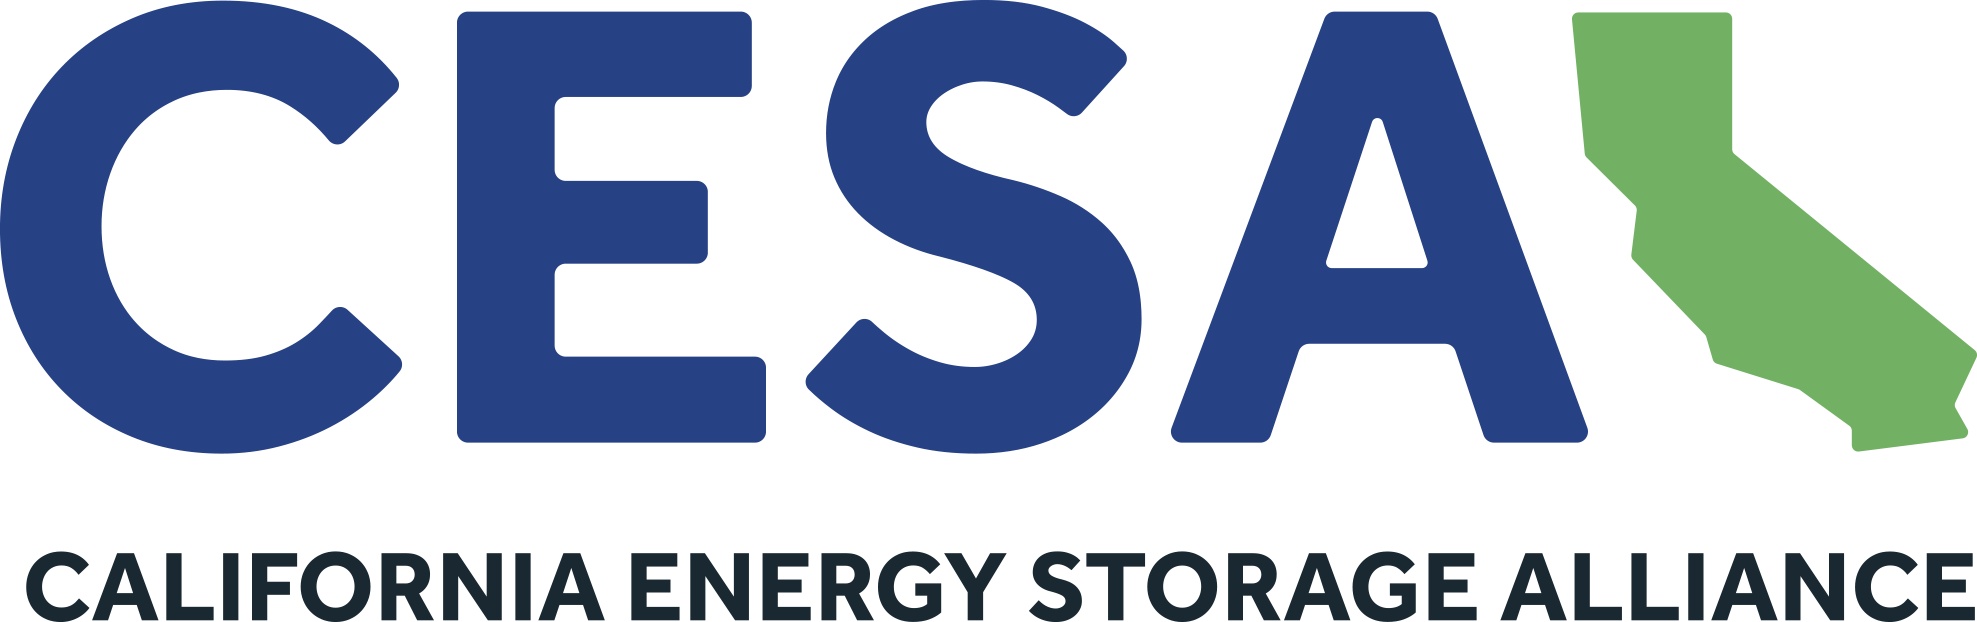 Co-Founder & Executive Director - 501(c)6 founded in January 2009 with 80+ member companies. CESA has been and continues to be instrumental in advancing California energy storage market development progress.